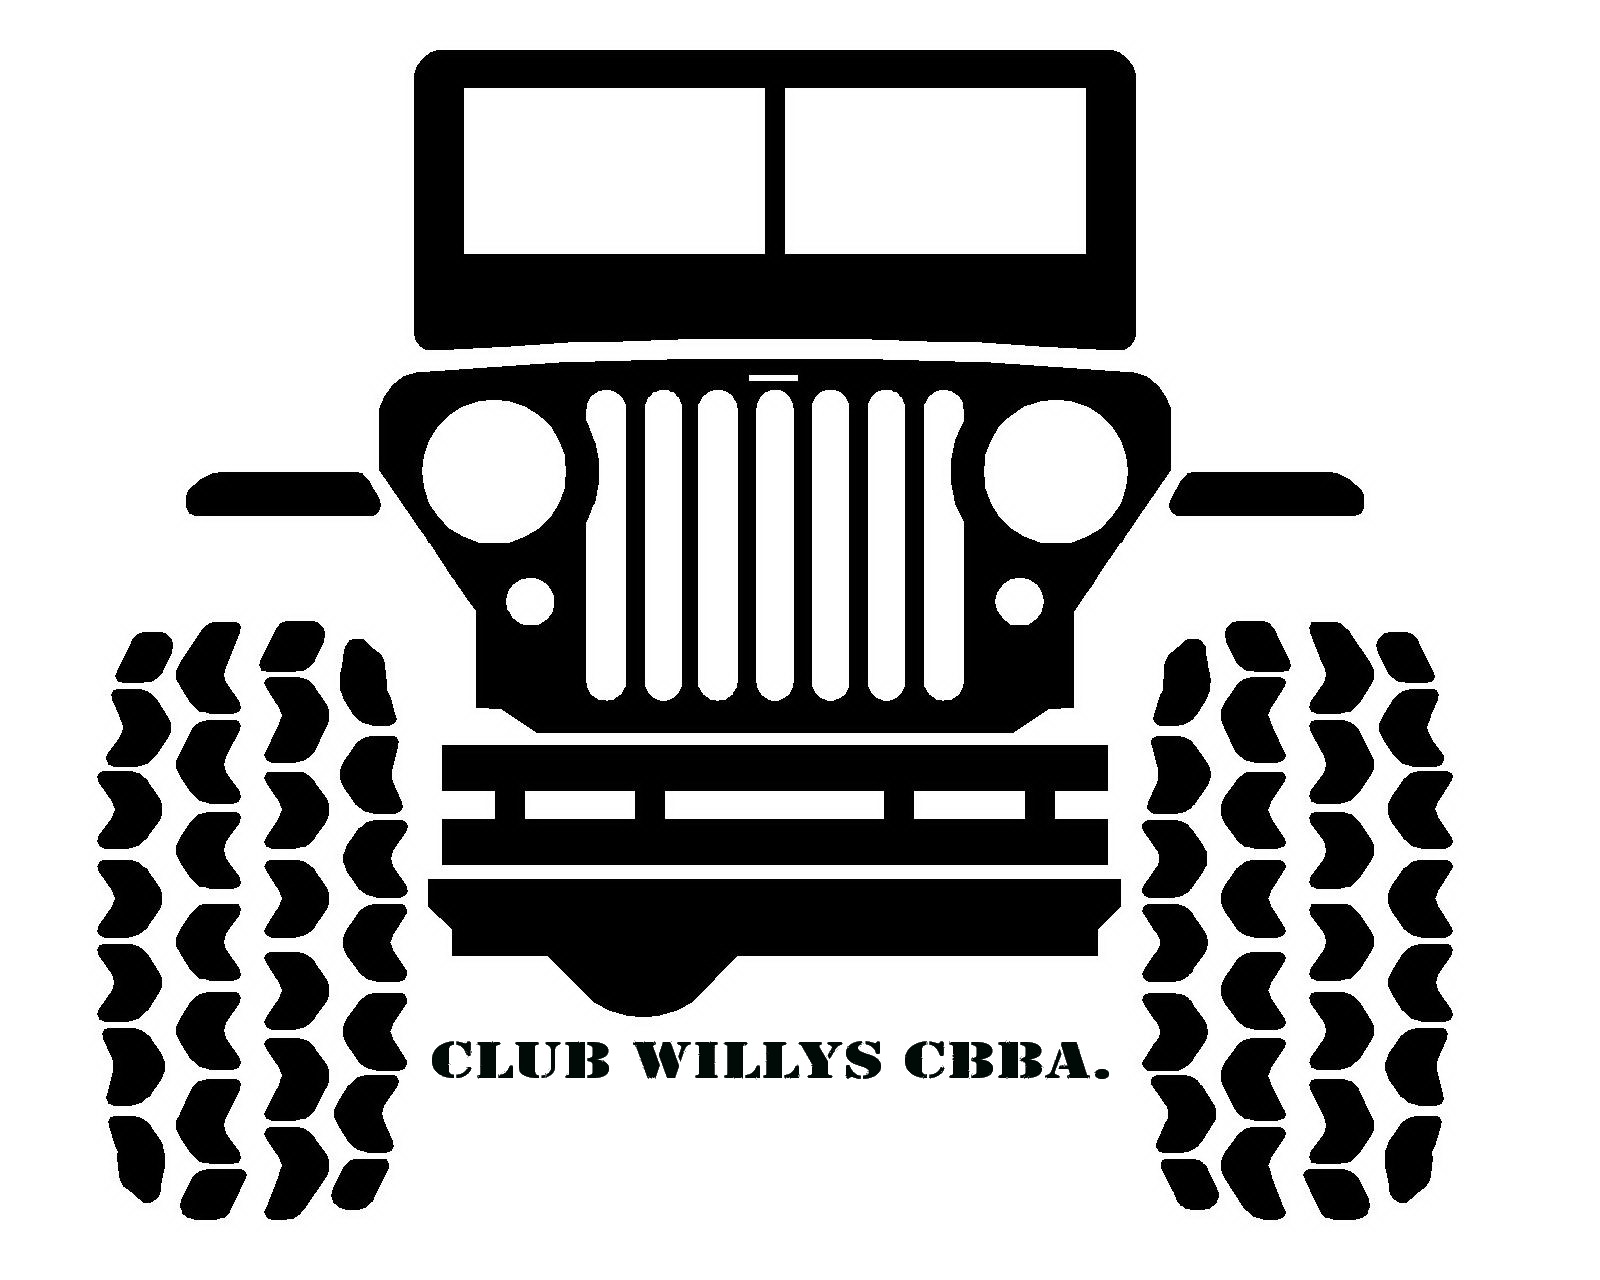 Willys jeep logos